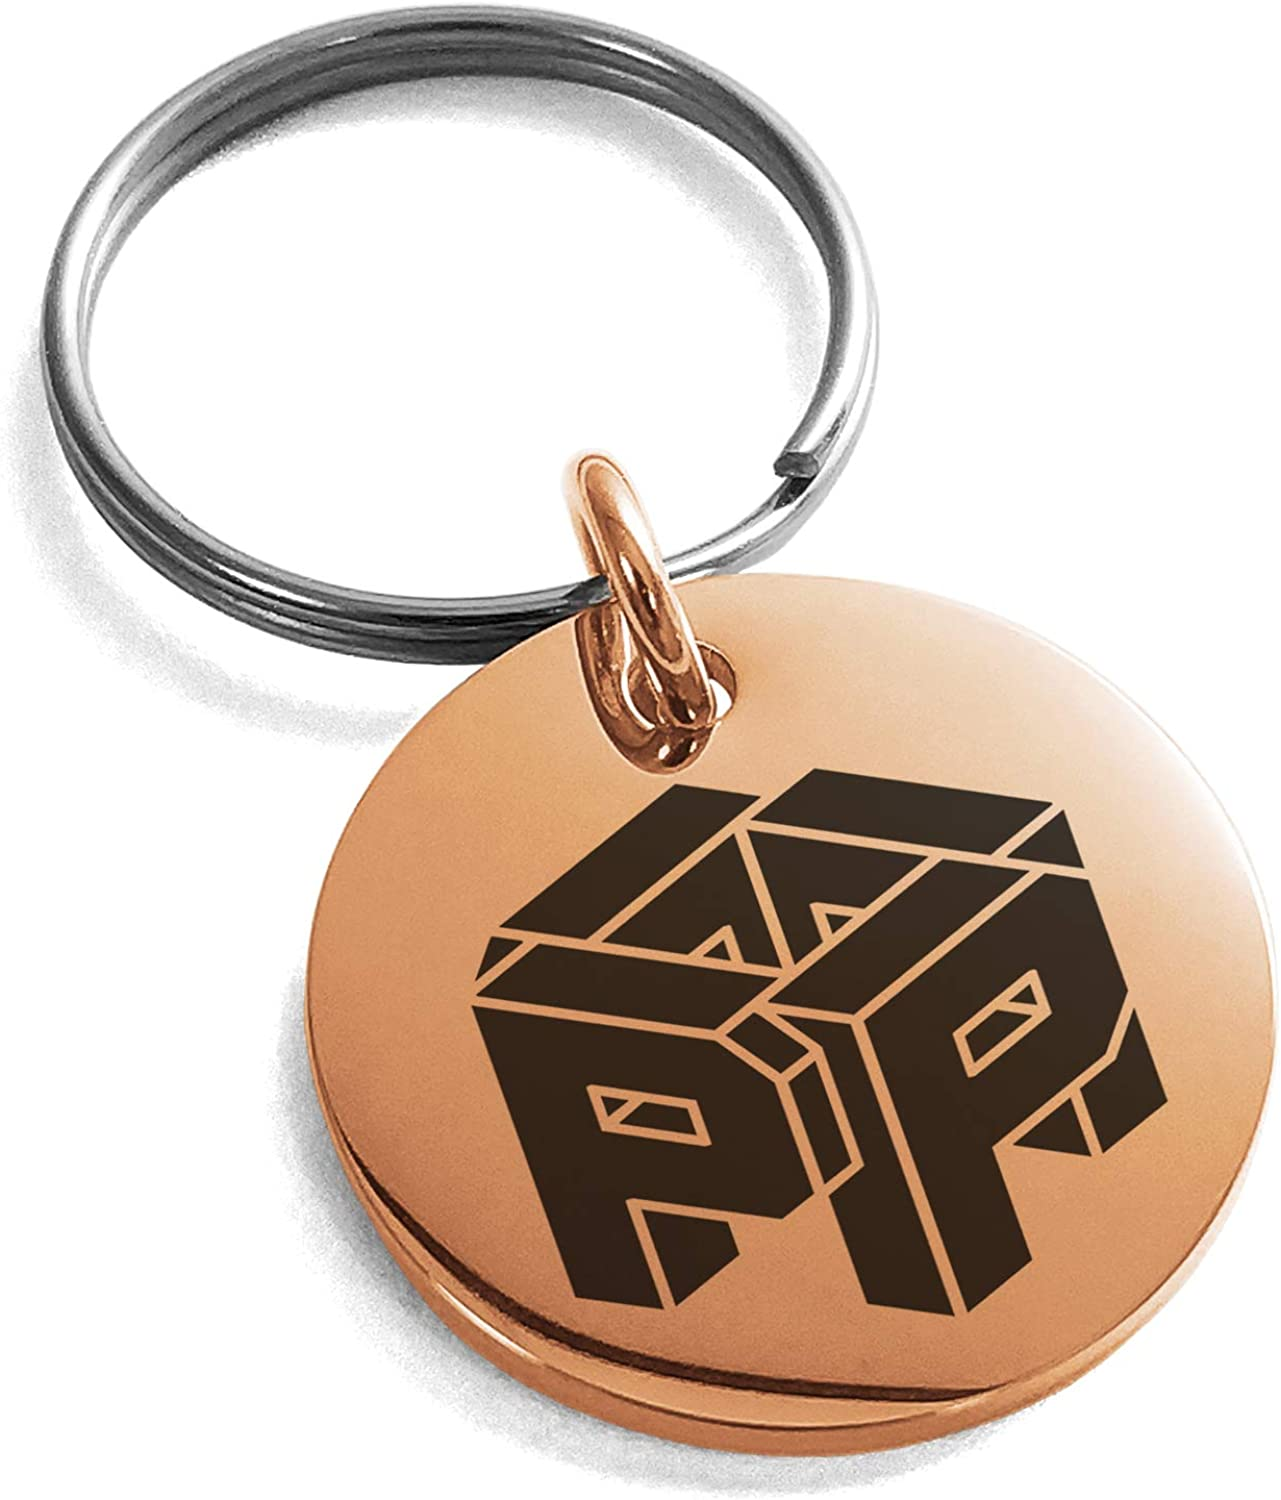 Tioneer Stainless Steel Letter P Initial 3D Cube Box Monogram Small Medallion Circle Charm Keychain Keyring